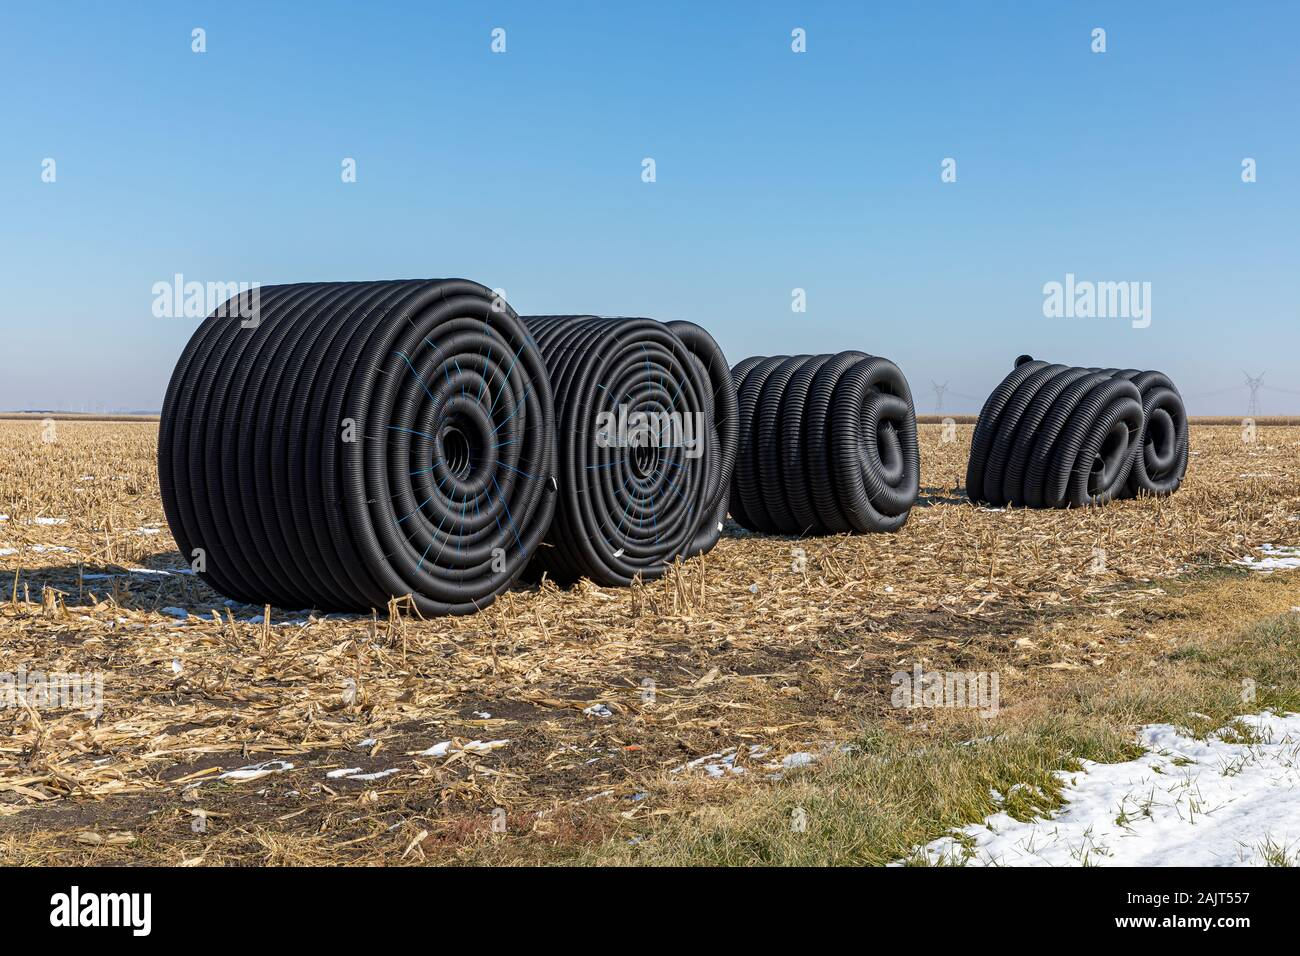 https www alamy com coiled rolls of black perforated plastic drainage pipe field tile sitting in field after harvest ready to be buried underground during winter image338591715 html